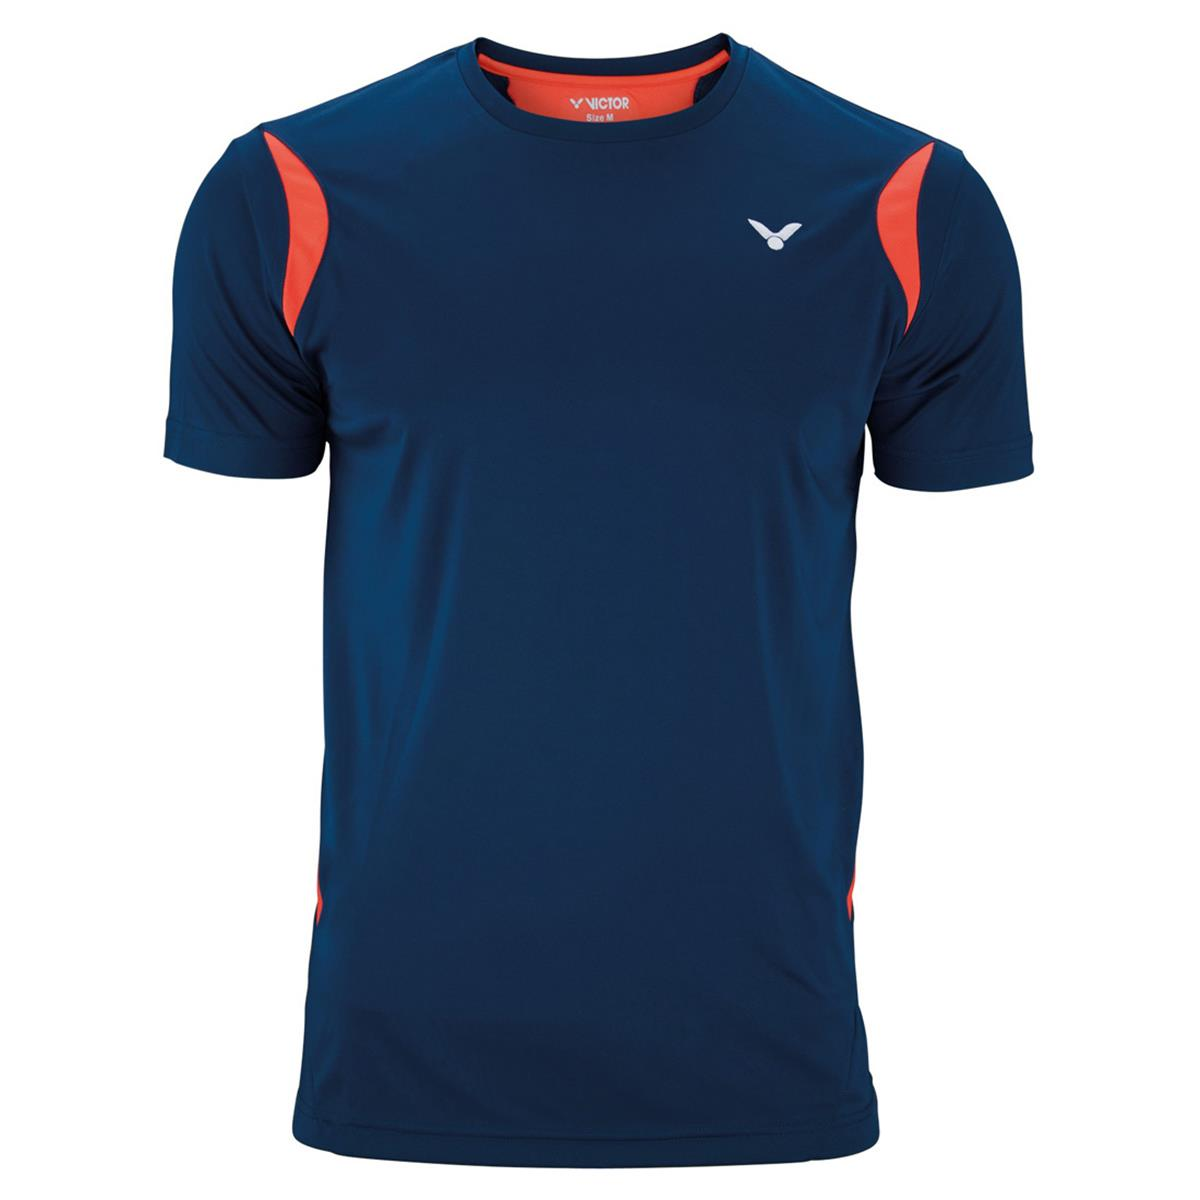 Victor Team Line Unisex Function T-Shirt (Coral)